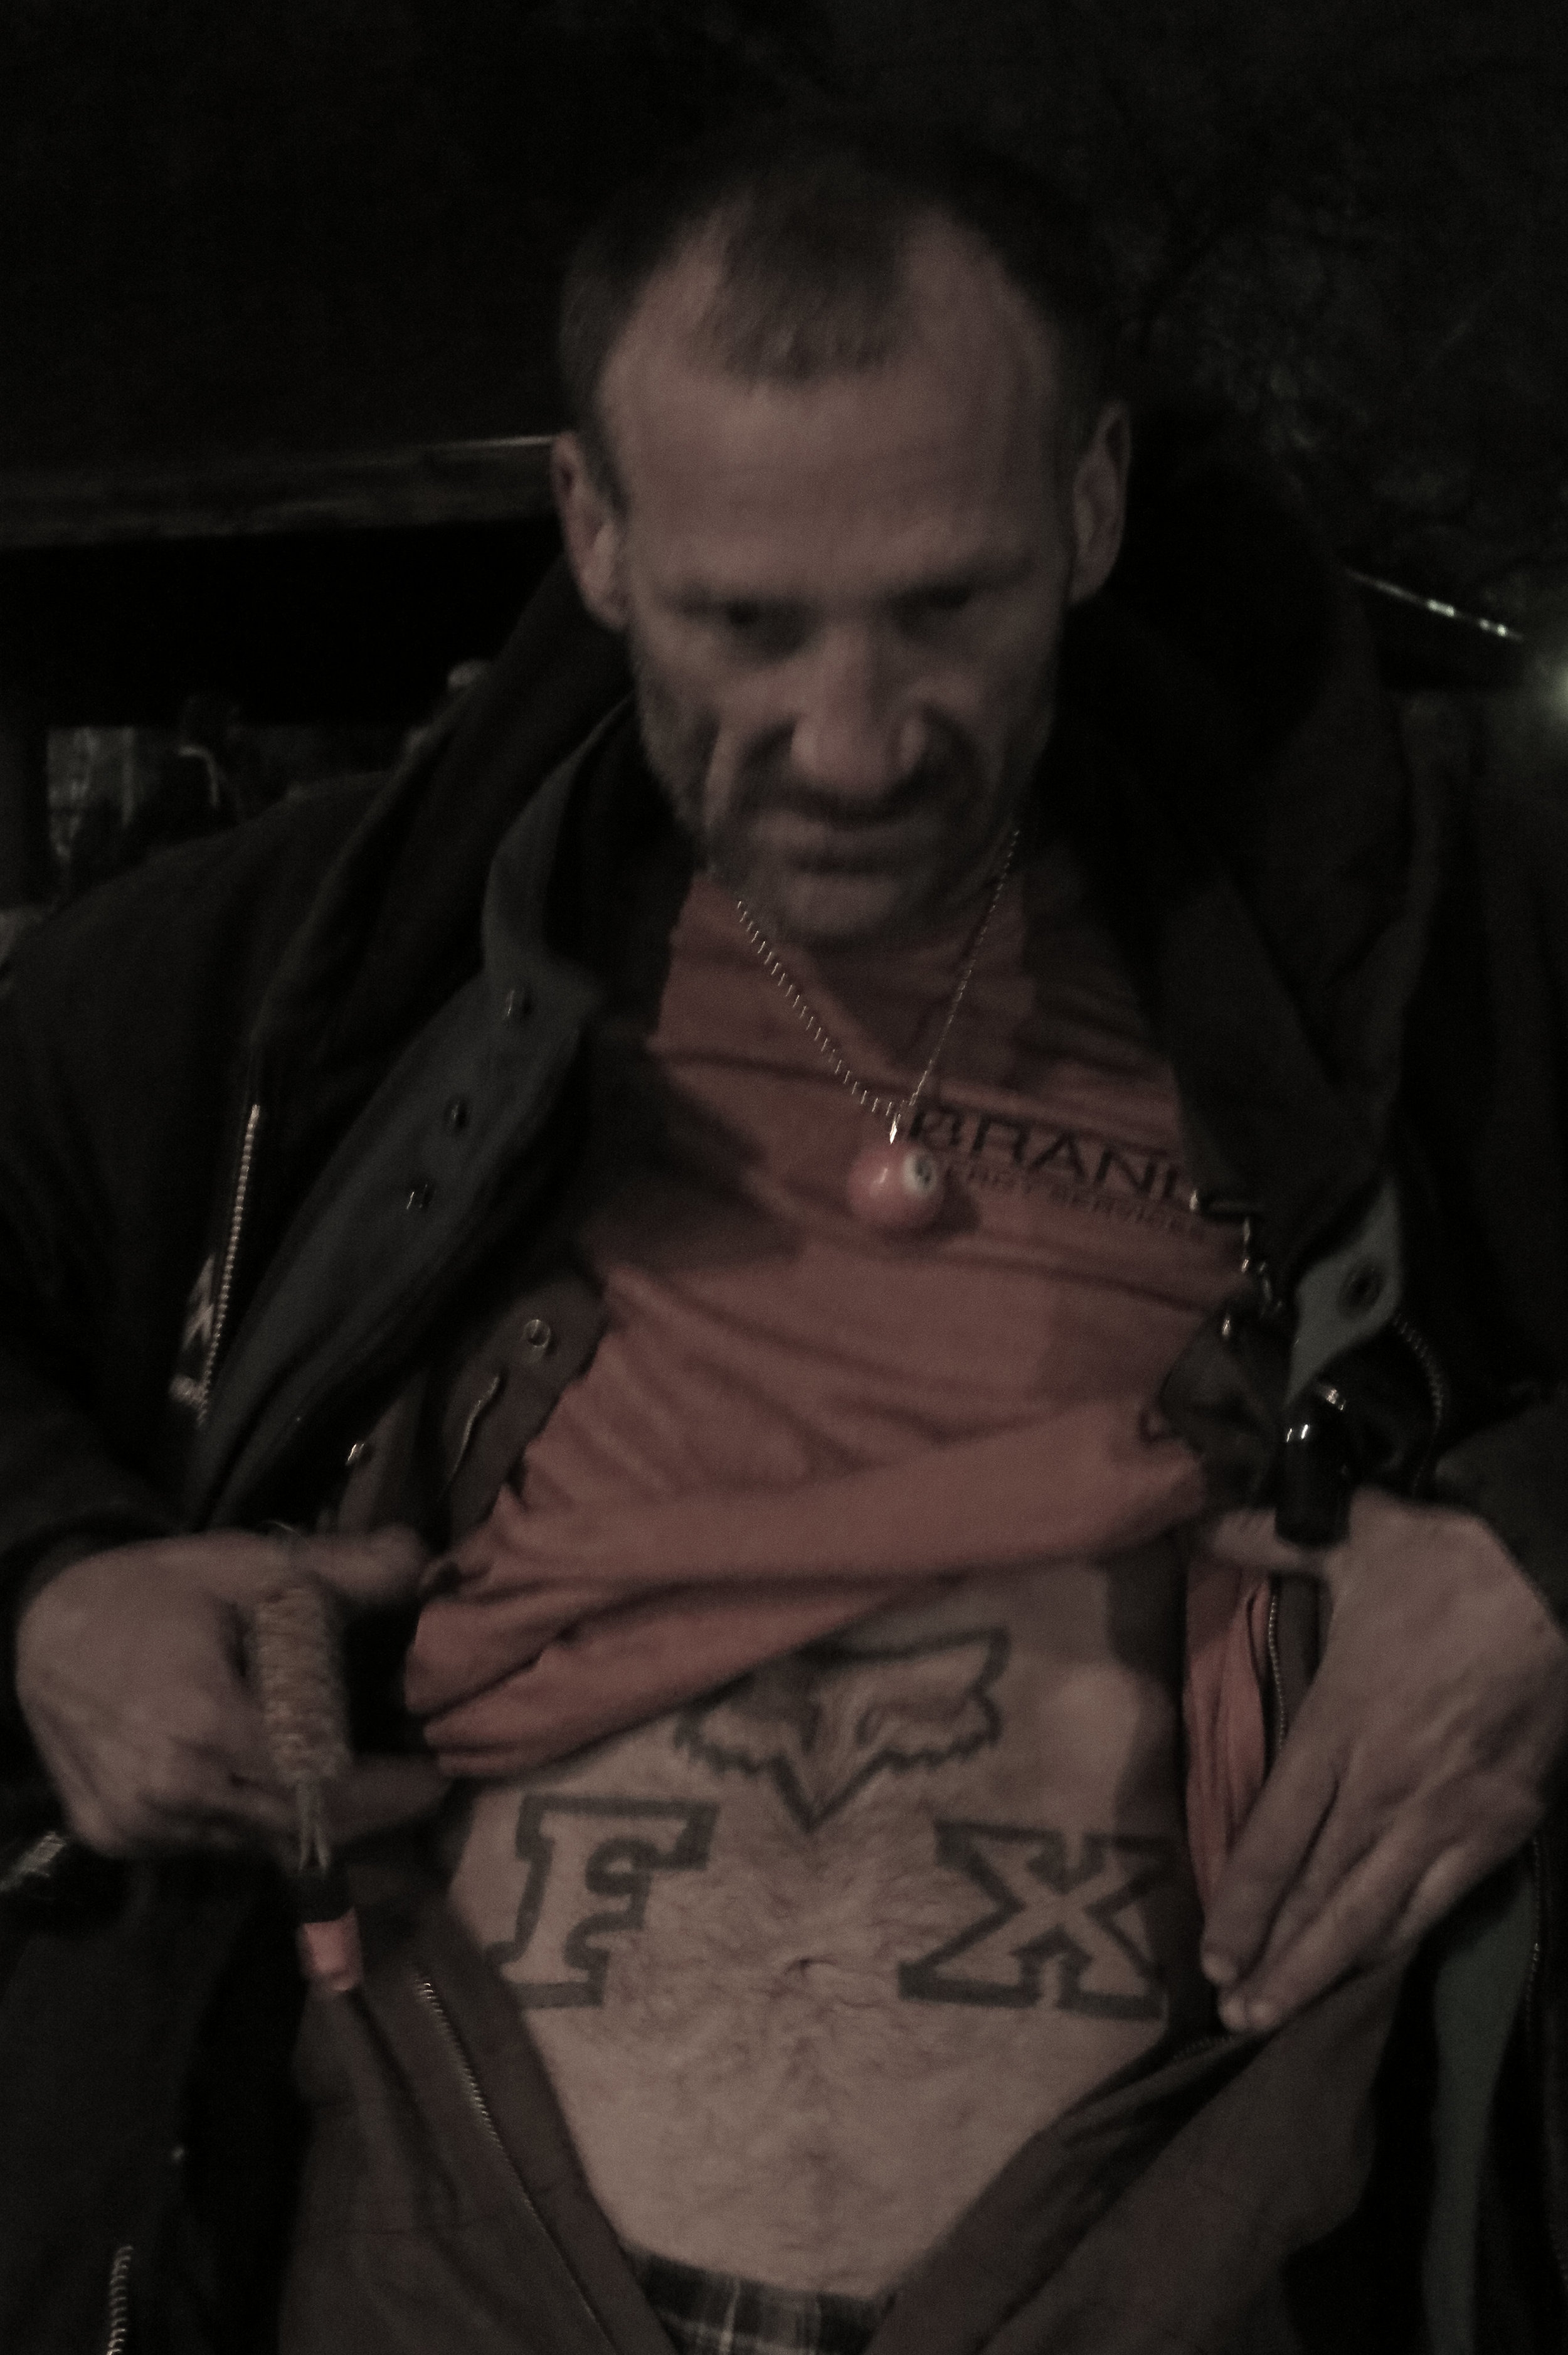 Fox got his tattoo and his nickname from his BMX racing passion.